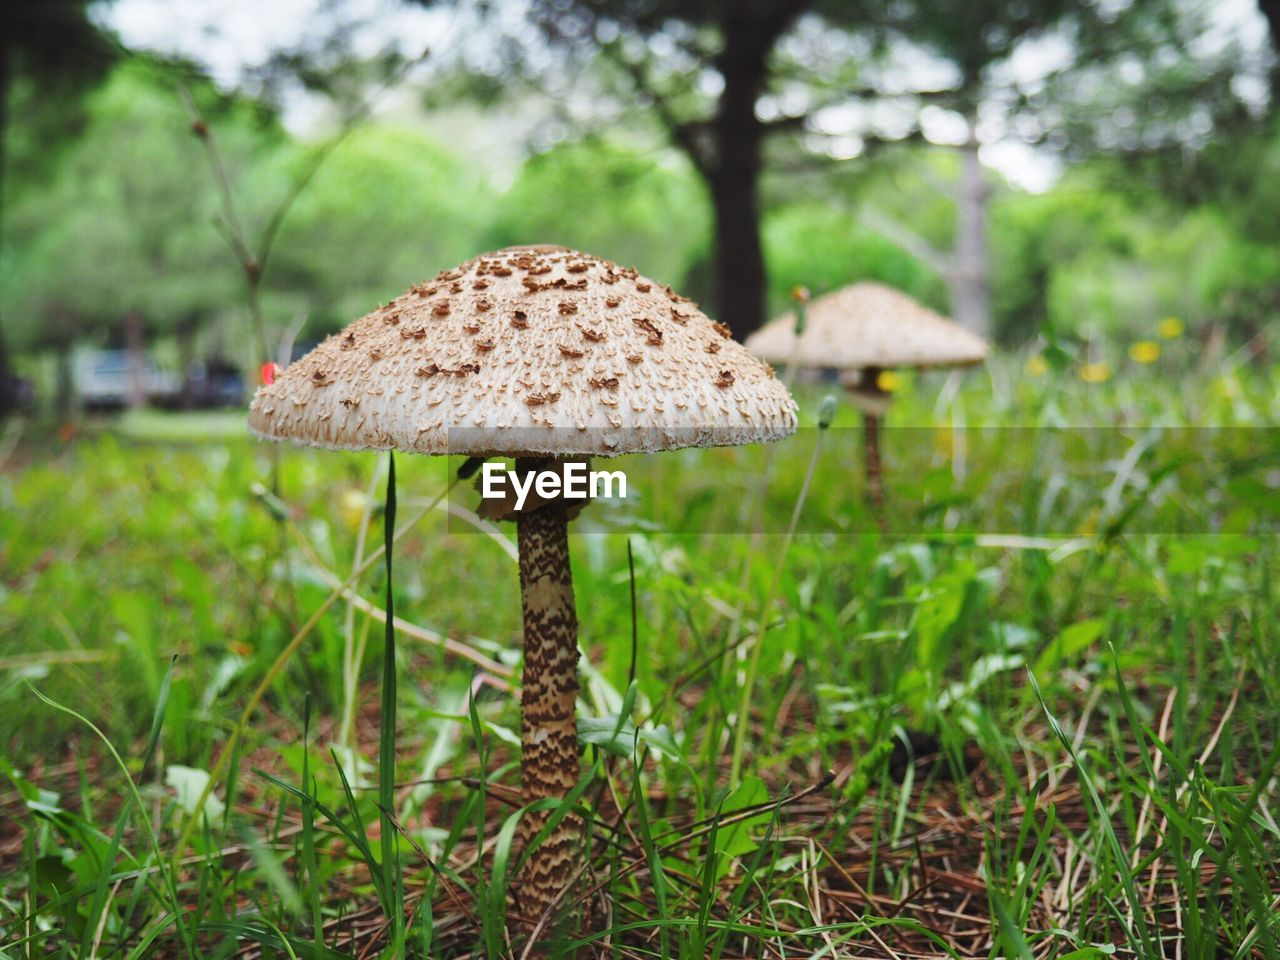 mushroom, fungus, plant, growth, land, food, vegetable, field, grass, focus on foreground, nature, tree, toadstool, day, green color, beauty in nature, no people, close-up, forest, freshness, outdoors, wild